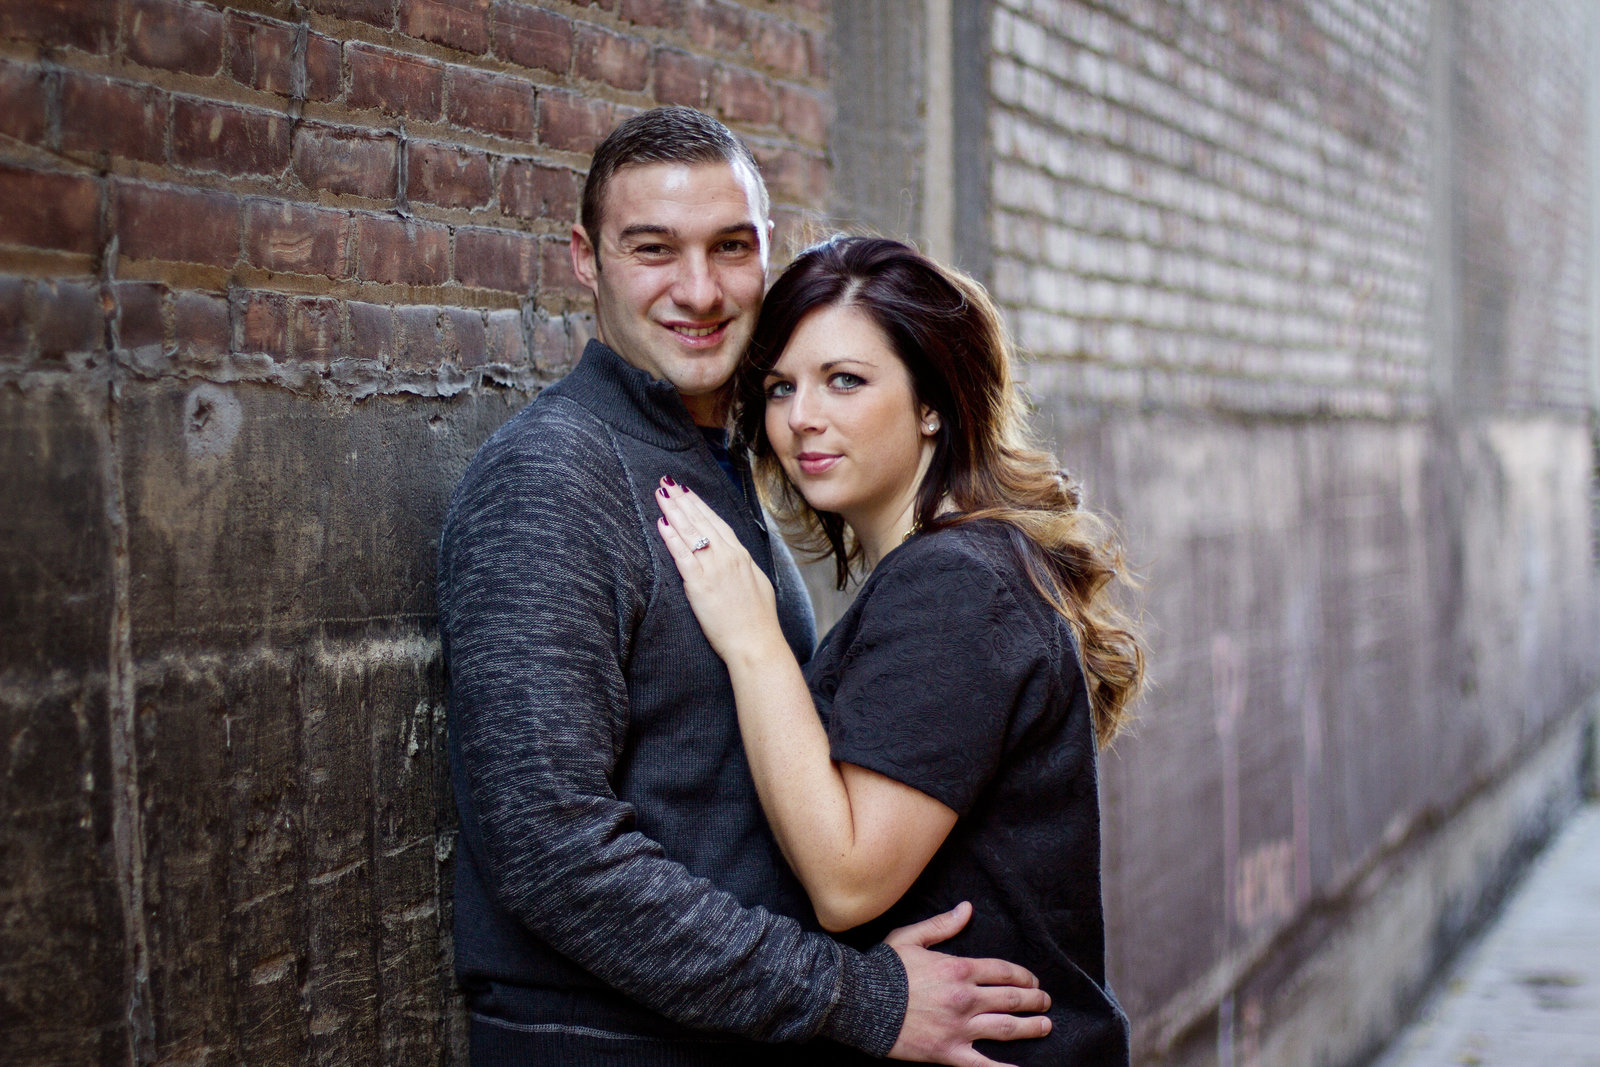 BGP_Toledo_Engagement_Session_Denny_and_Megan_11022014_0010